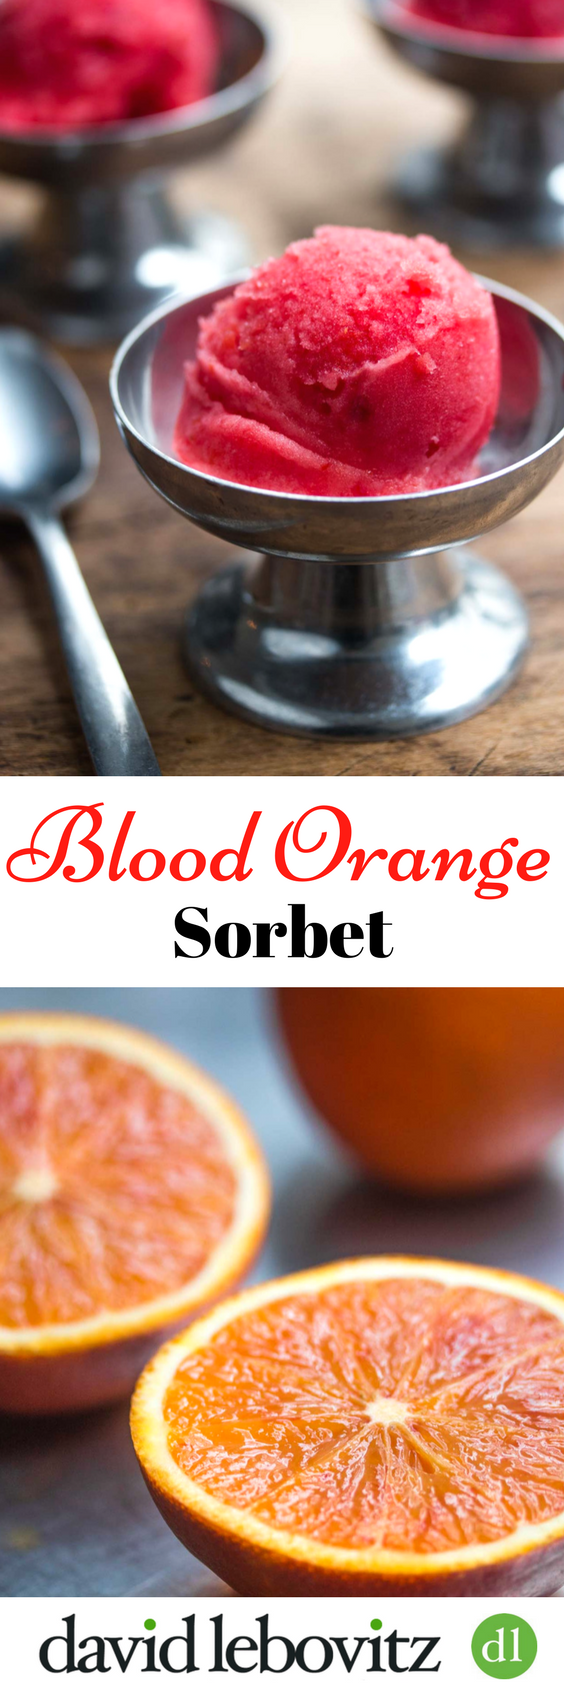 A delicious, refreshing two-ingredient sorbet that captures the taste of fresh oranges in each icy scoop.